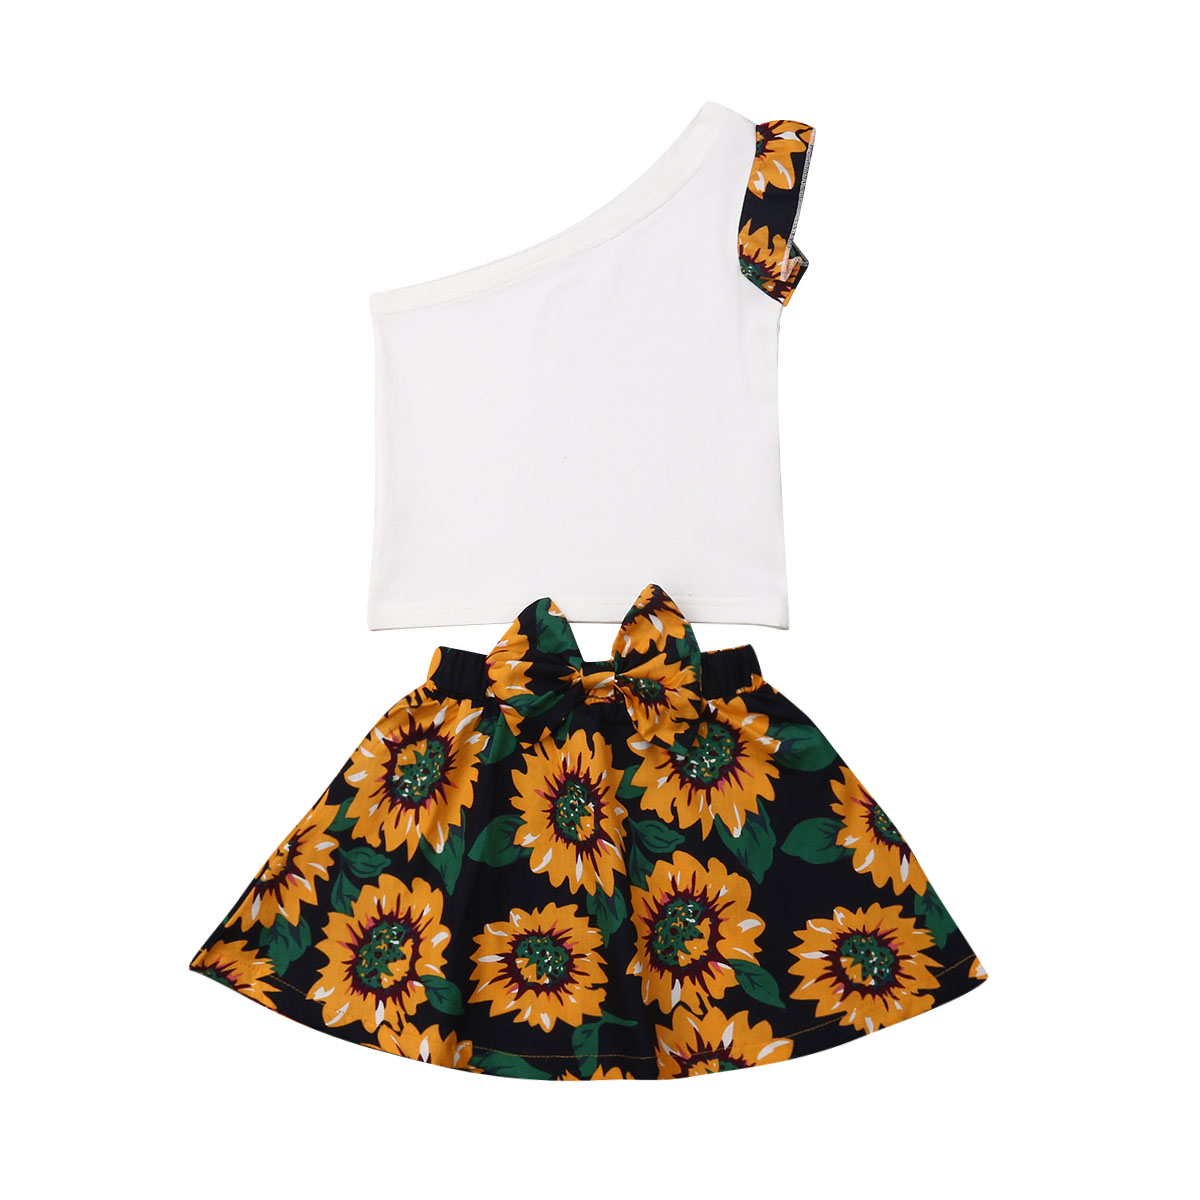 2019 New Summer Toddler Kid Baby Girl Sunflower Off-shoulder Clothes Sets T-Shirt Top+Tutu Skirt Outfits Set Wholesale Dropship(China)